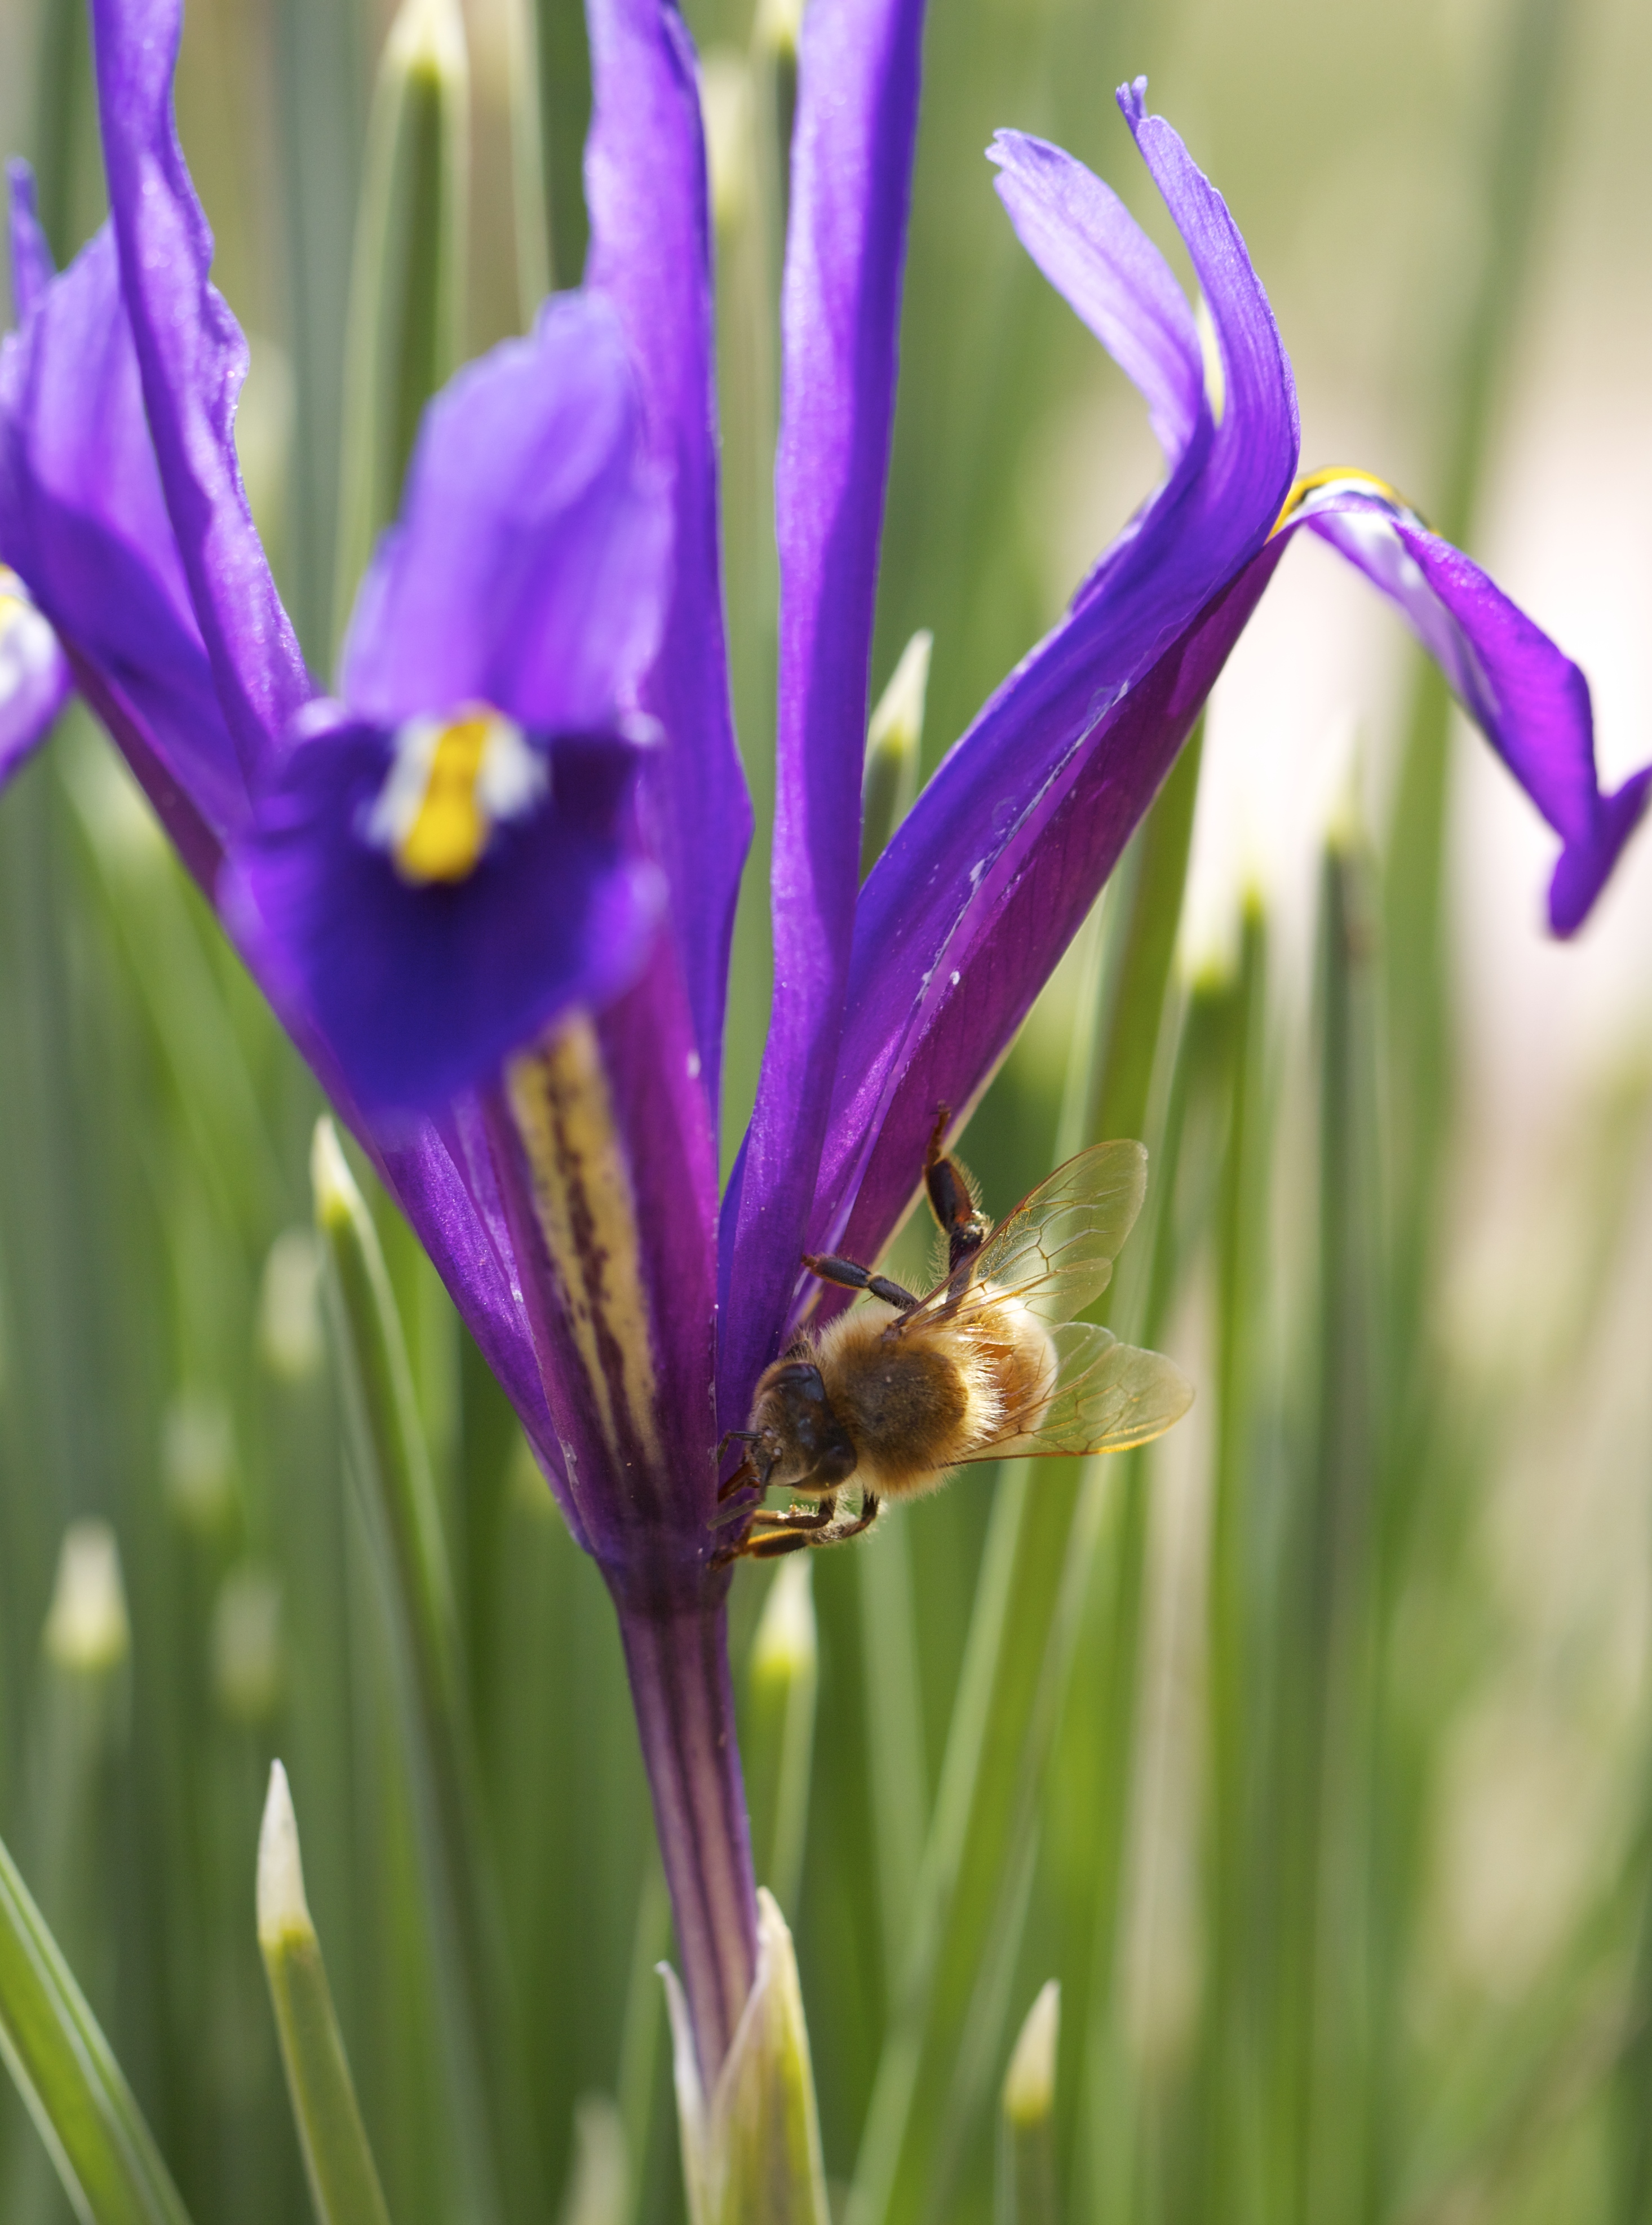 But where are they going? Several new patches of irises have opened, but bee visits to them have tapered off. This bee is drinking from between flowers on the narrow-leaved irises, the last of the four varieties to open.